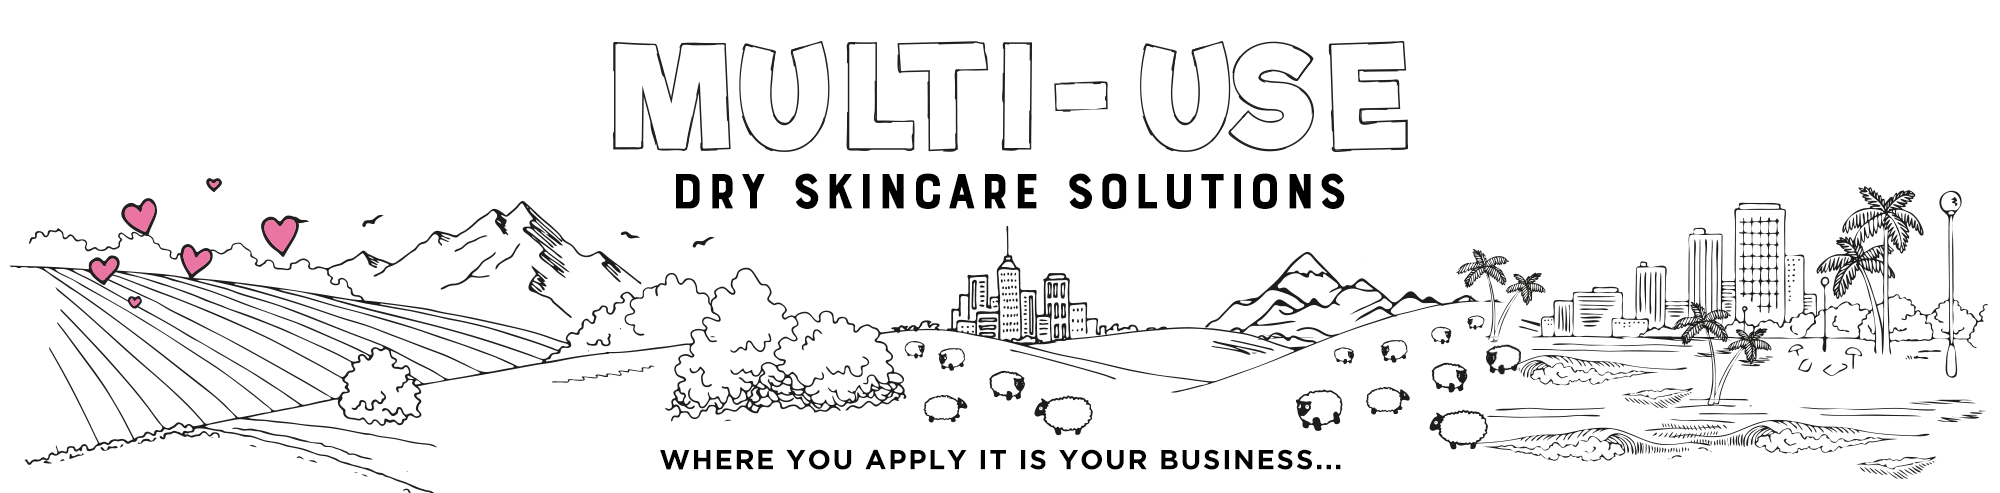 Multi-use dry skincare solutions